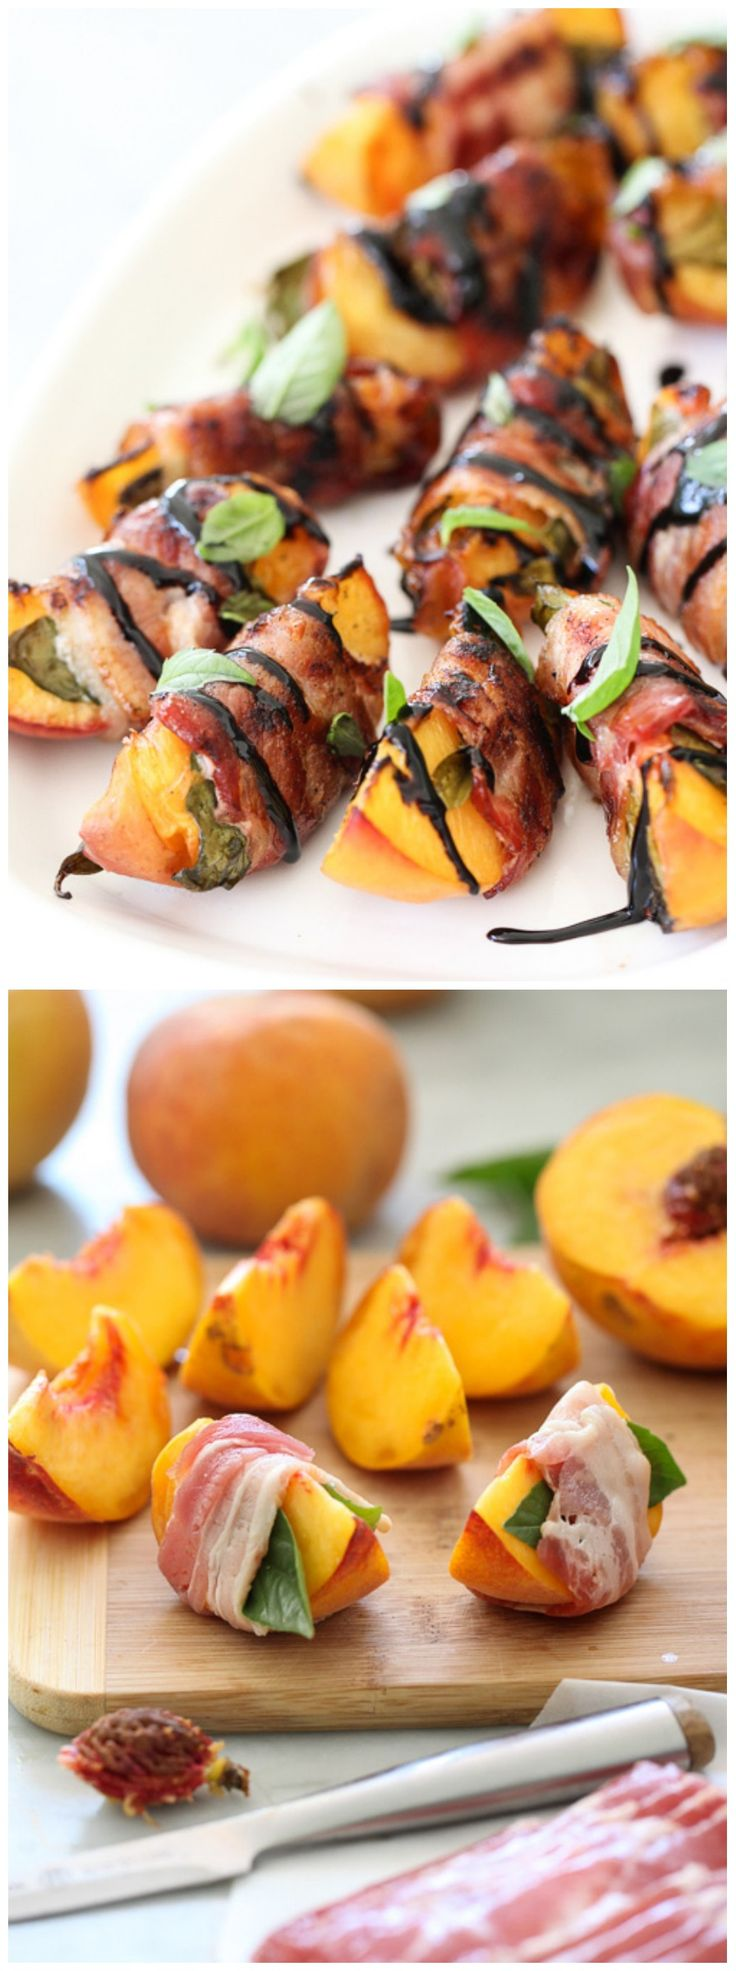 Bacon Wrapped Grilled Peaches with Balsamic Glaze #recipe on foodiecrush.com #appetizer #peaches #bacon – Jaya